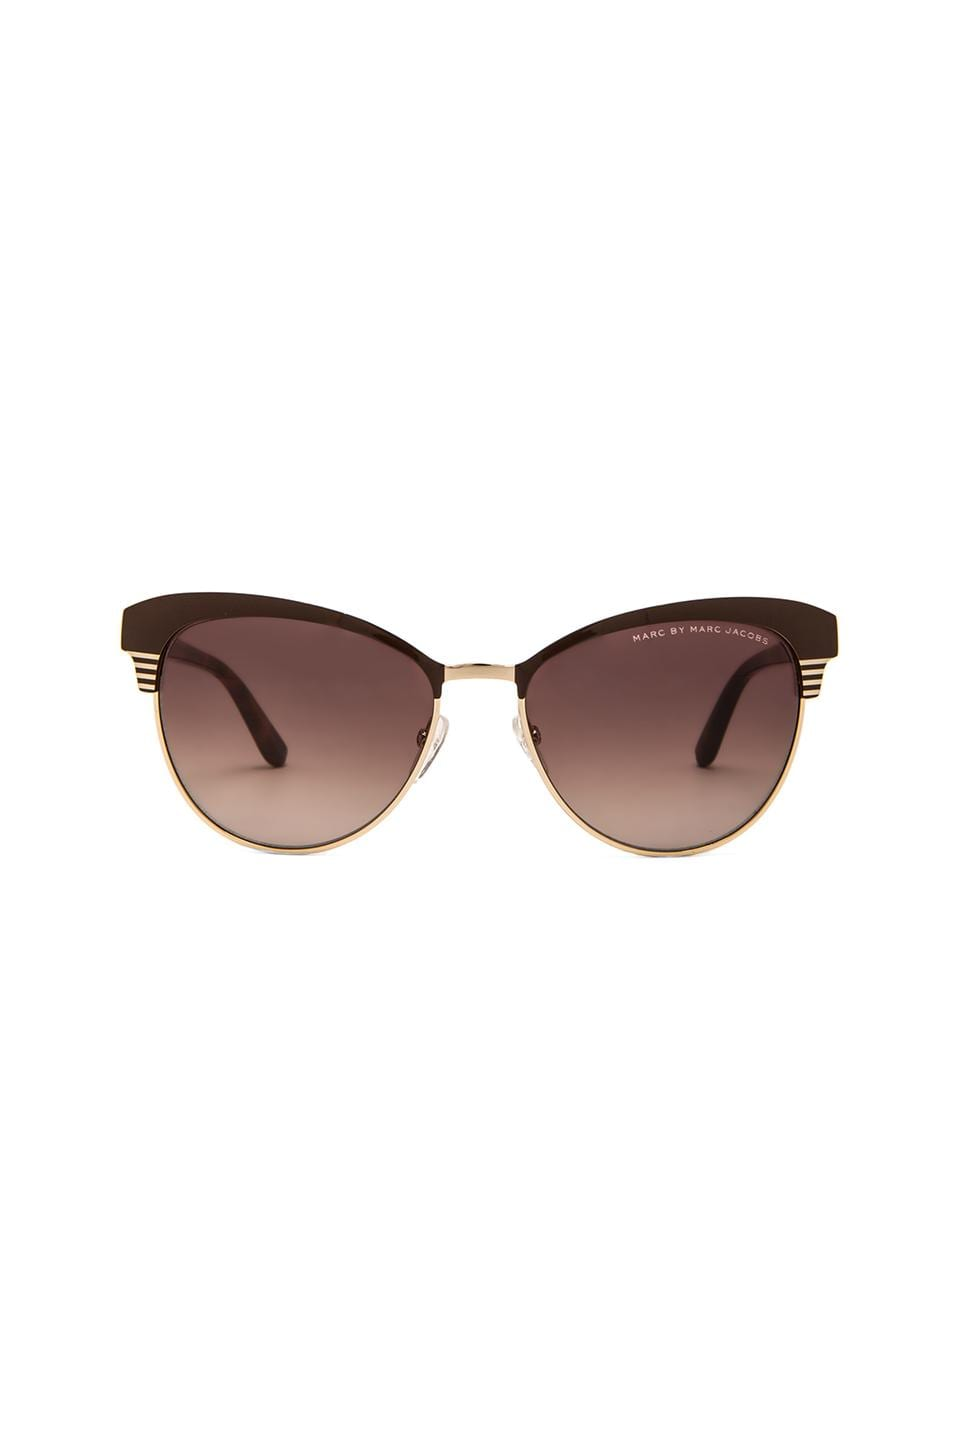 Marc by Marc Jacobs Metal Frame Cat Eye Sunglasses in Light Gold